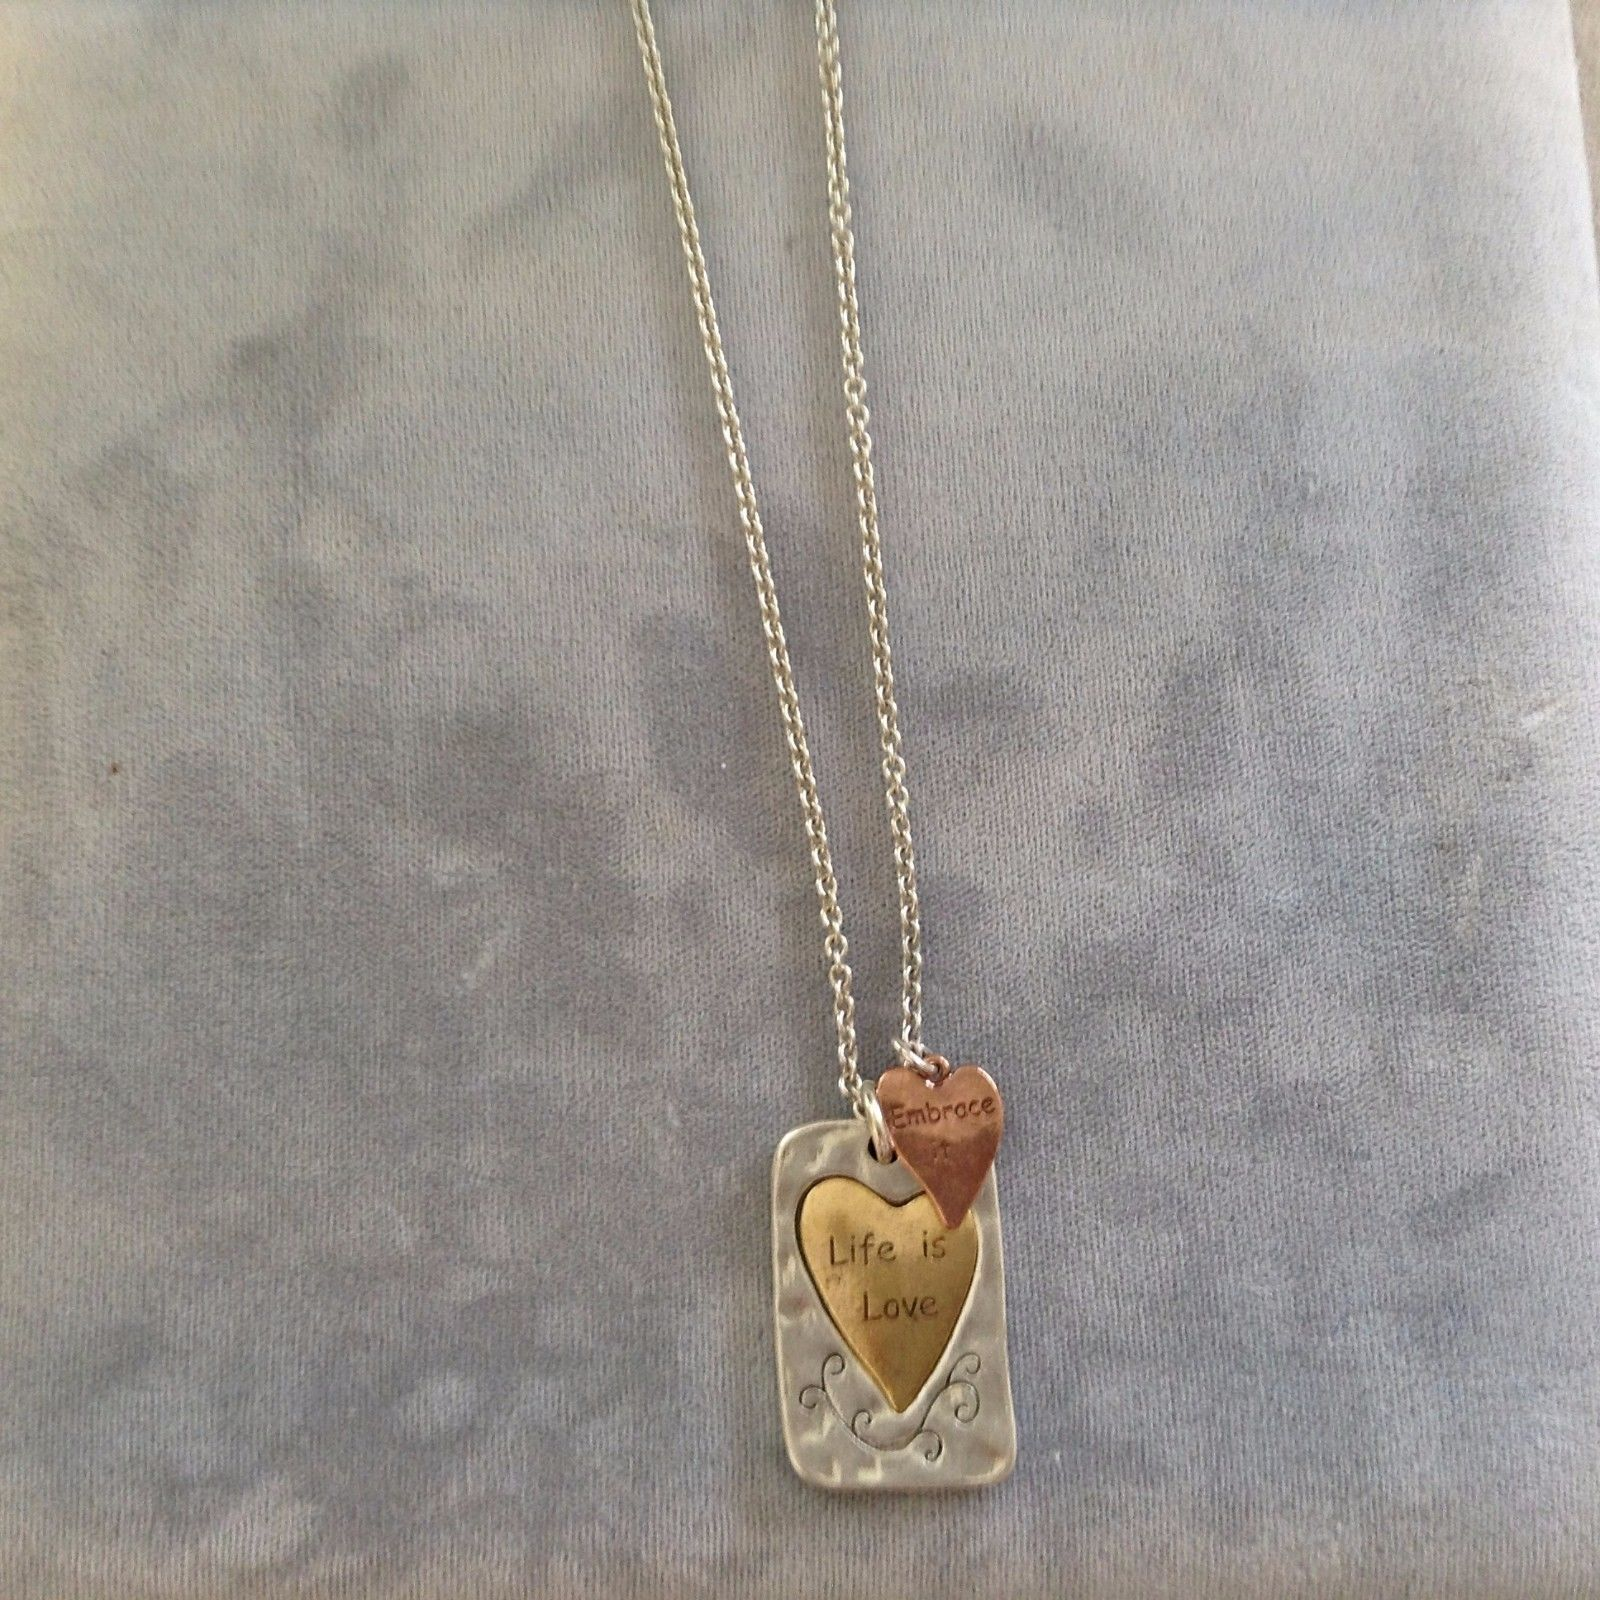 New Allure Silver Gold Bronze Toned Necklace Life Is Love Square Heart Pendant